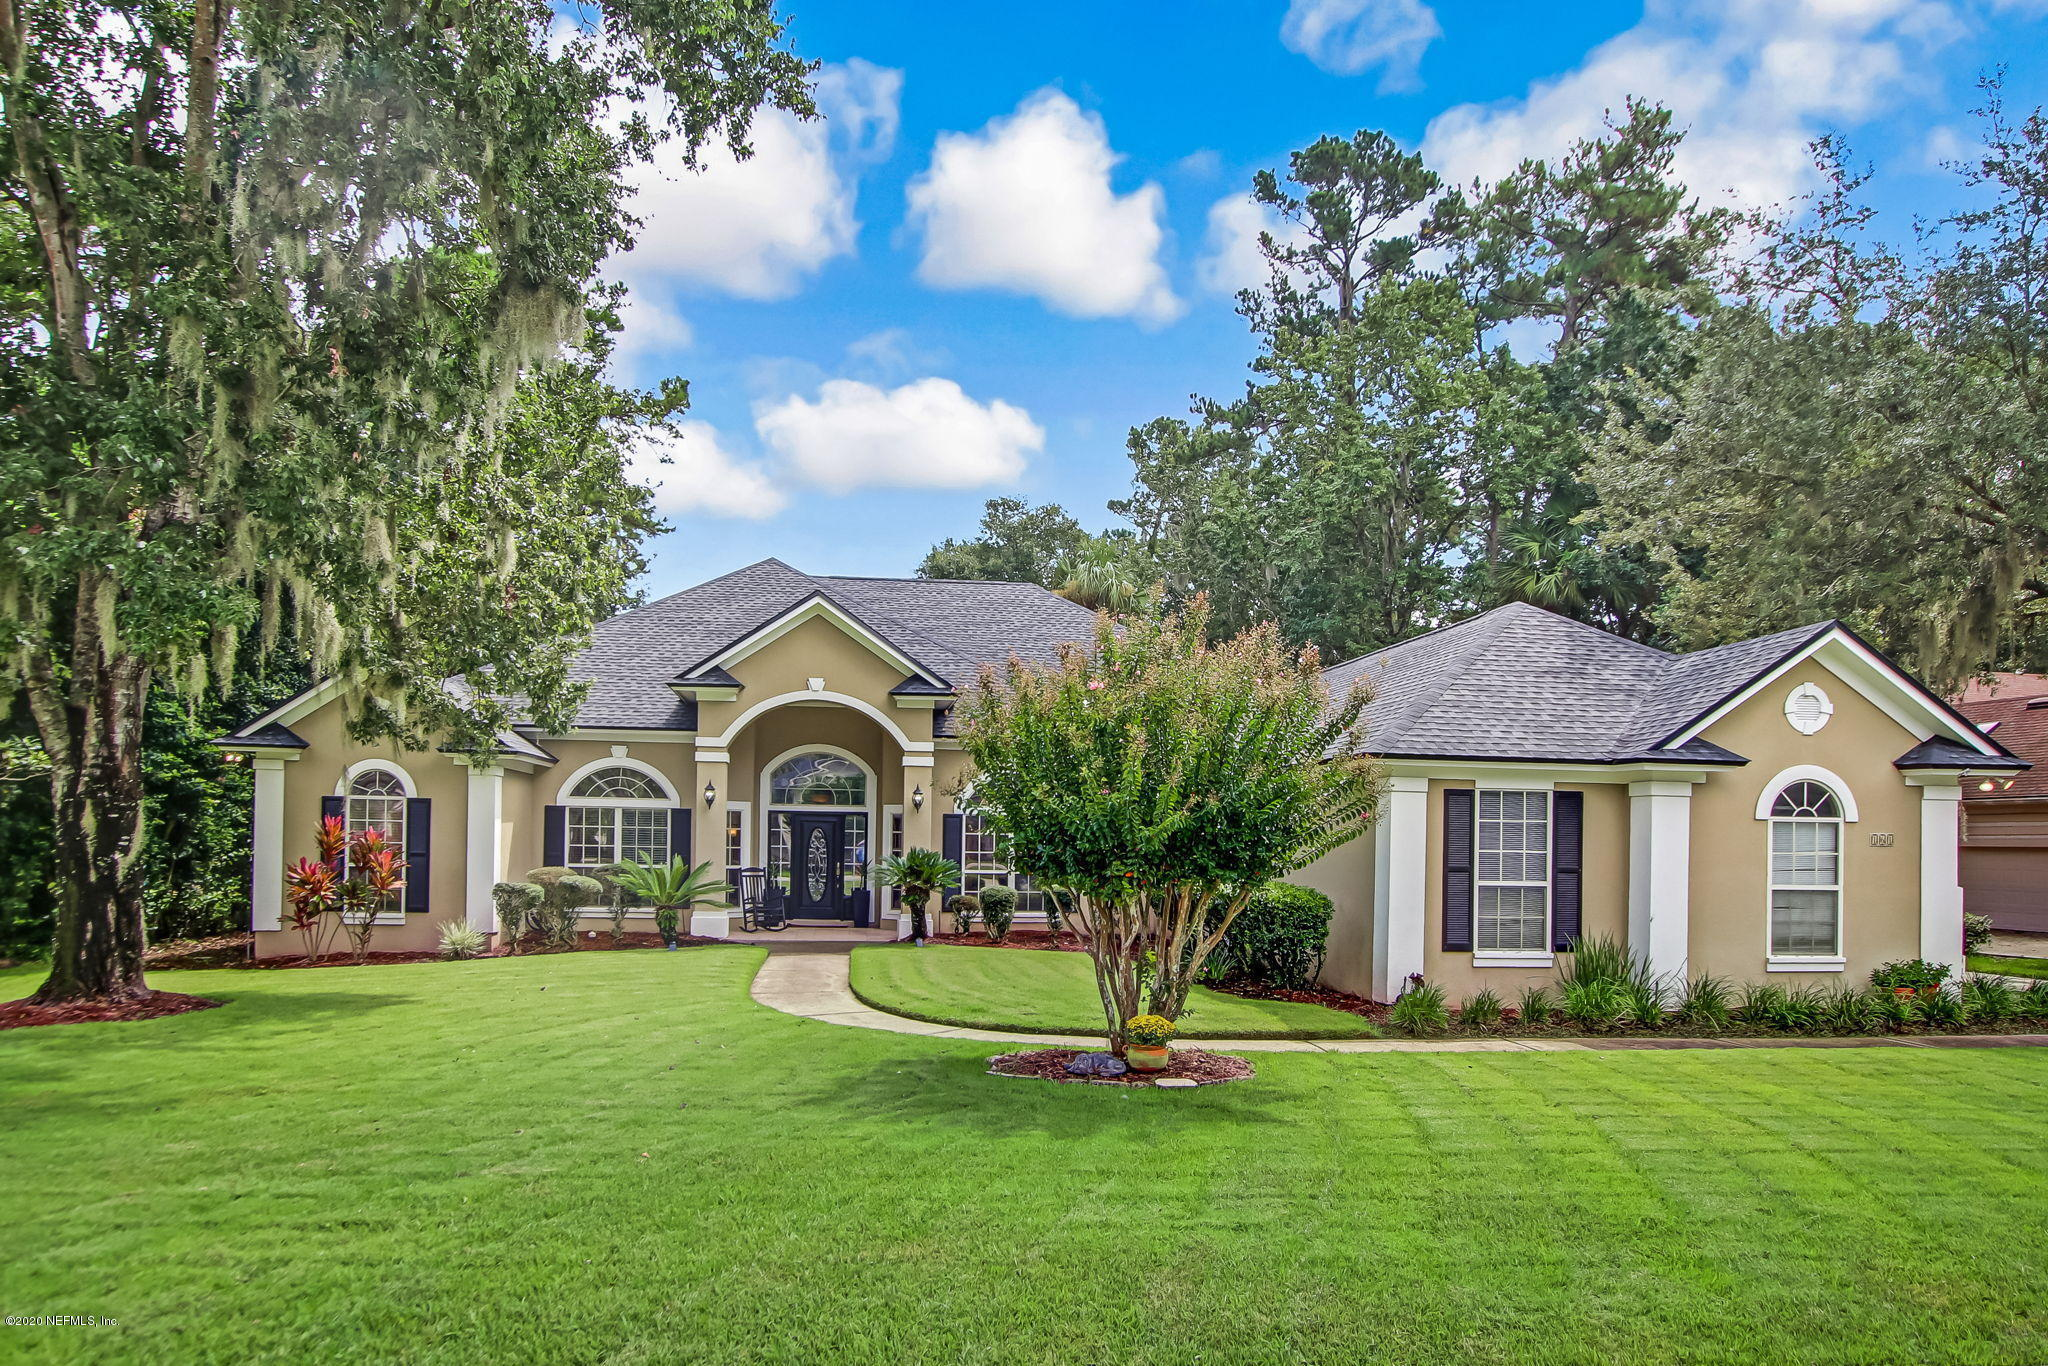 Details for 161 North Cove Dr, PONTE VEDRA BEACH, FL 32082